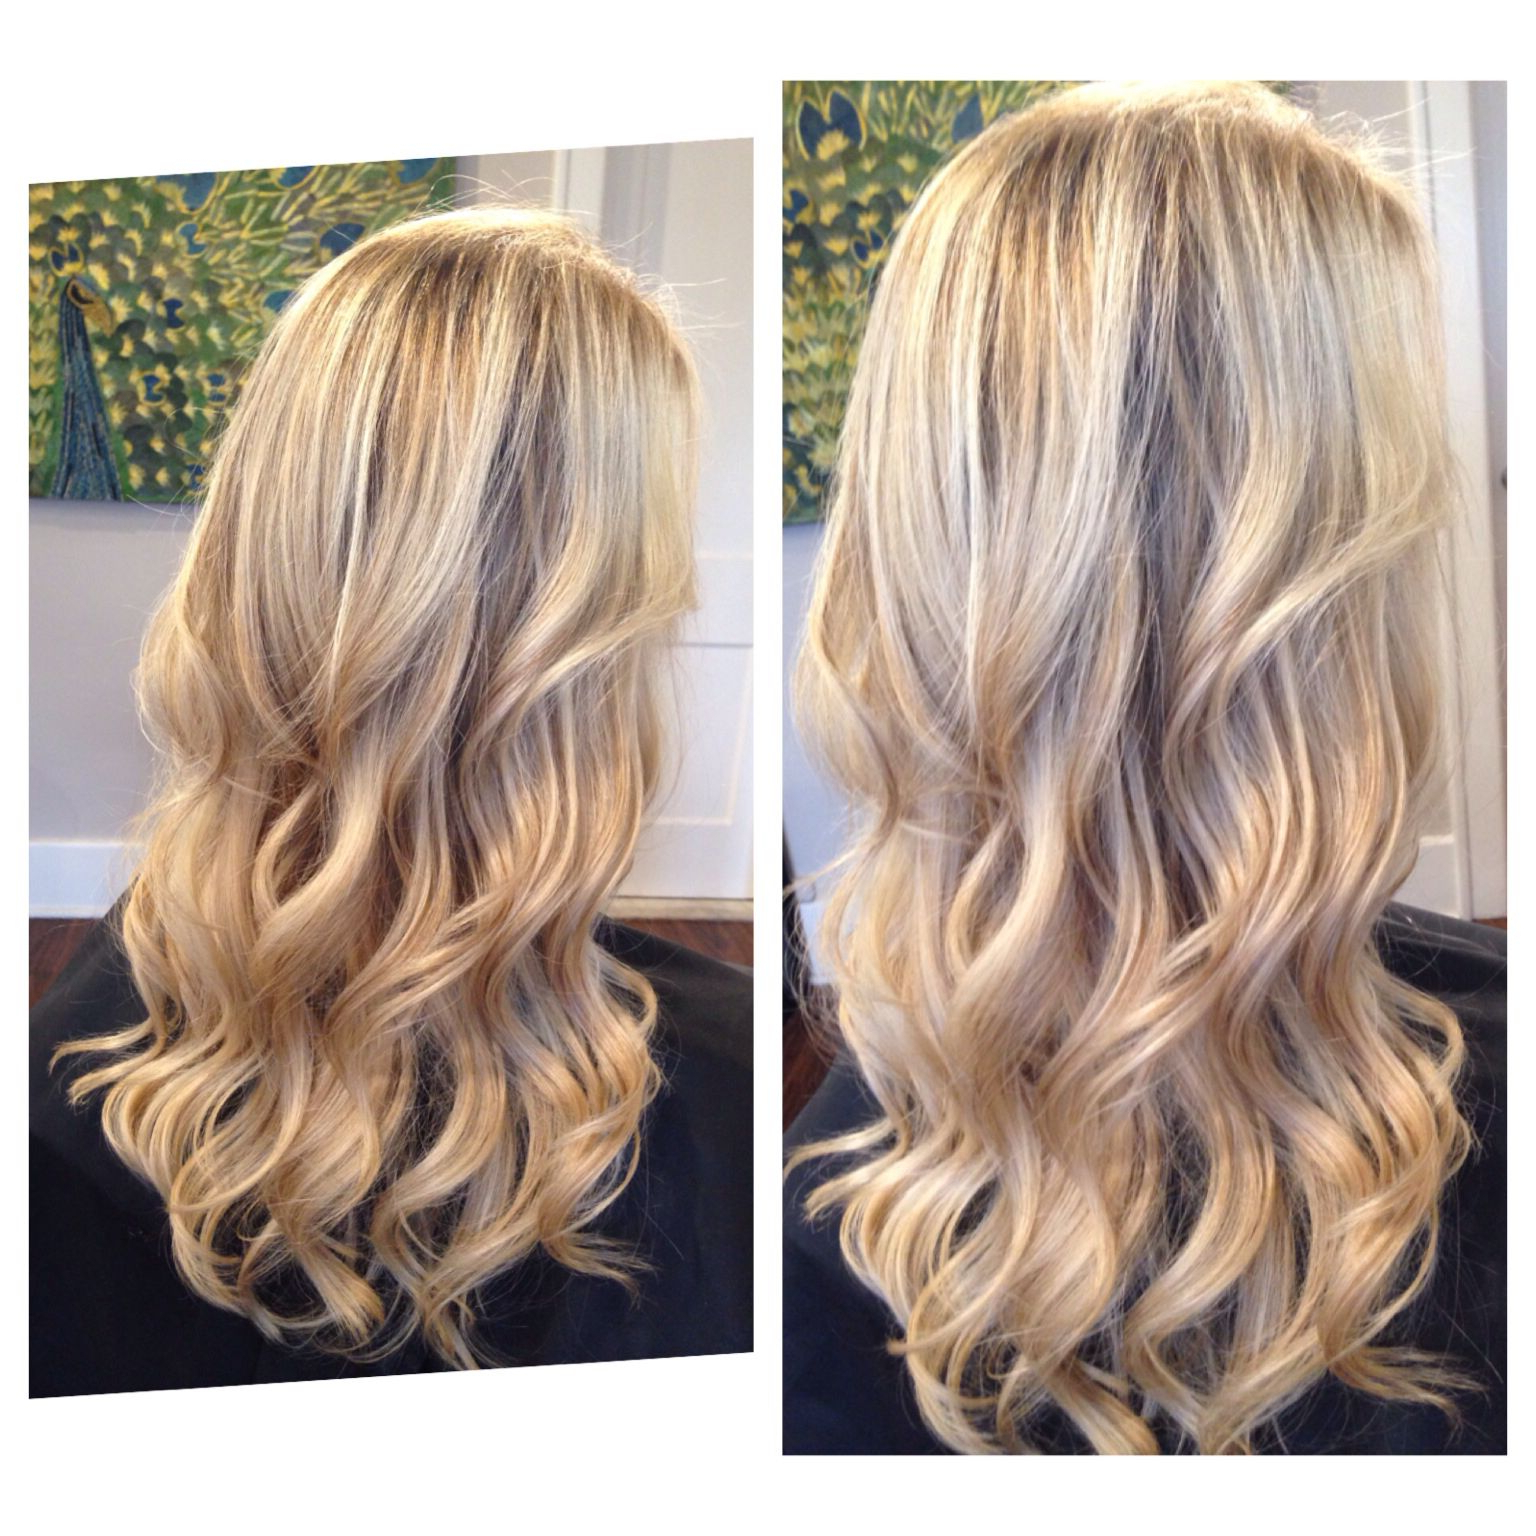 Blonde Dimension And Blonding Magic Waterfall Cascading For 2020 Cascading Silky Waves Hairstyles (View 2 of 20)